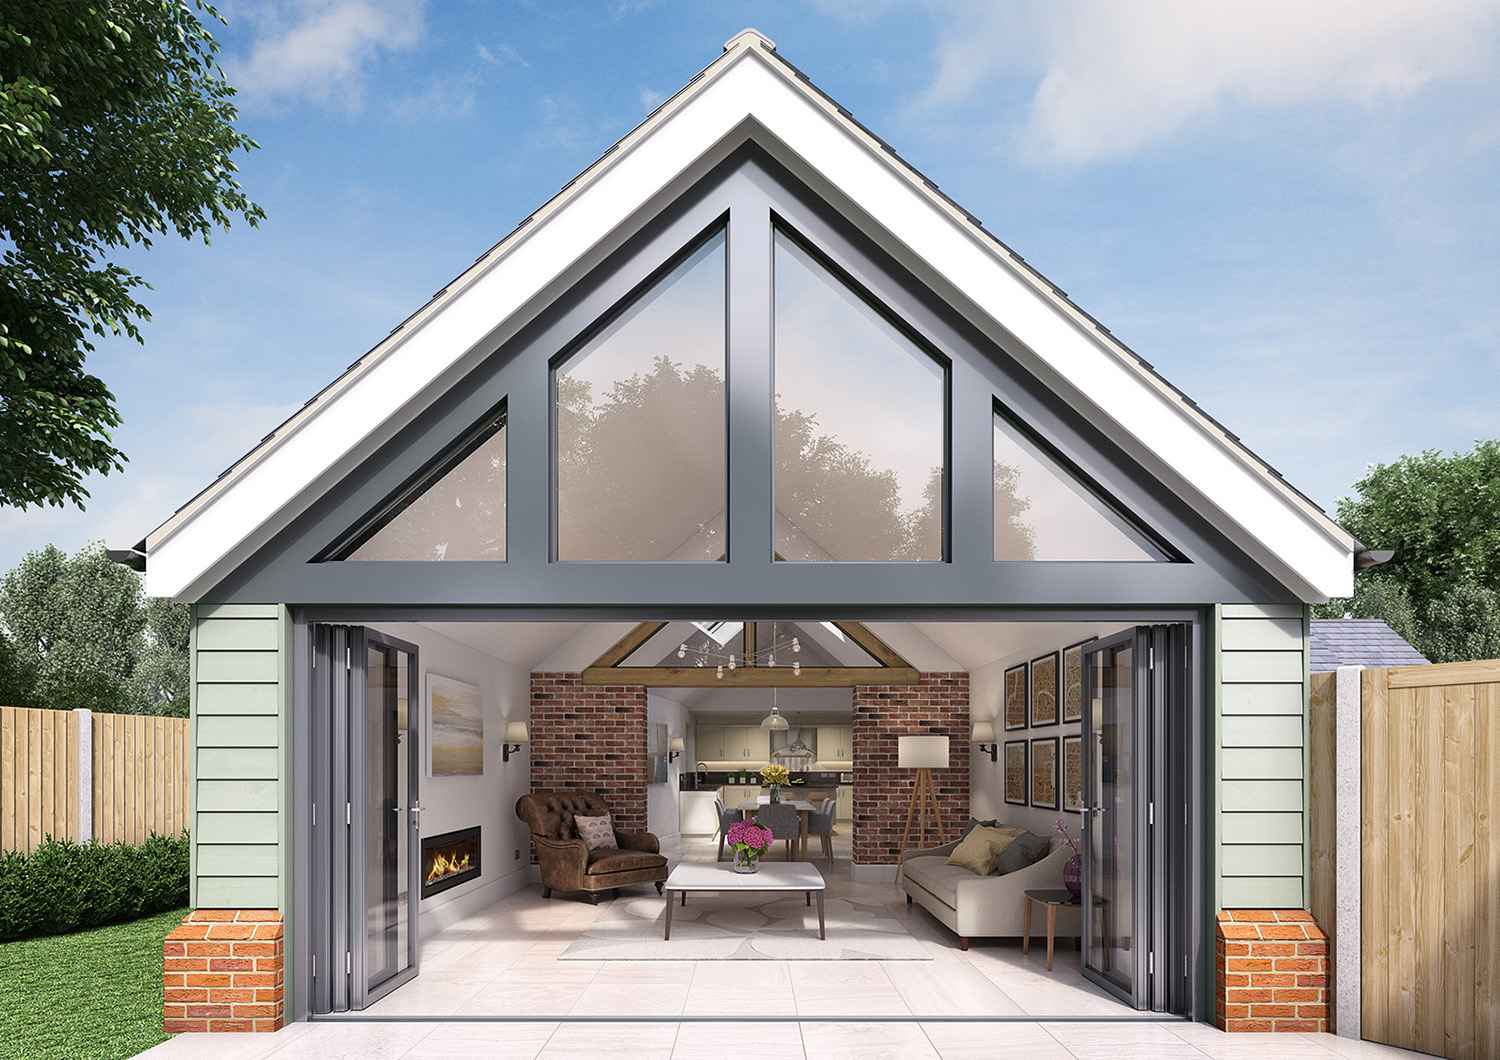 Press together with Leisure together with 3dillustration likewise Morley Road in addition Charles Roberts Studios. on cgis exteriors